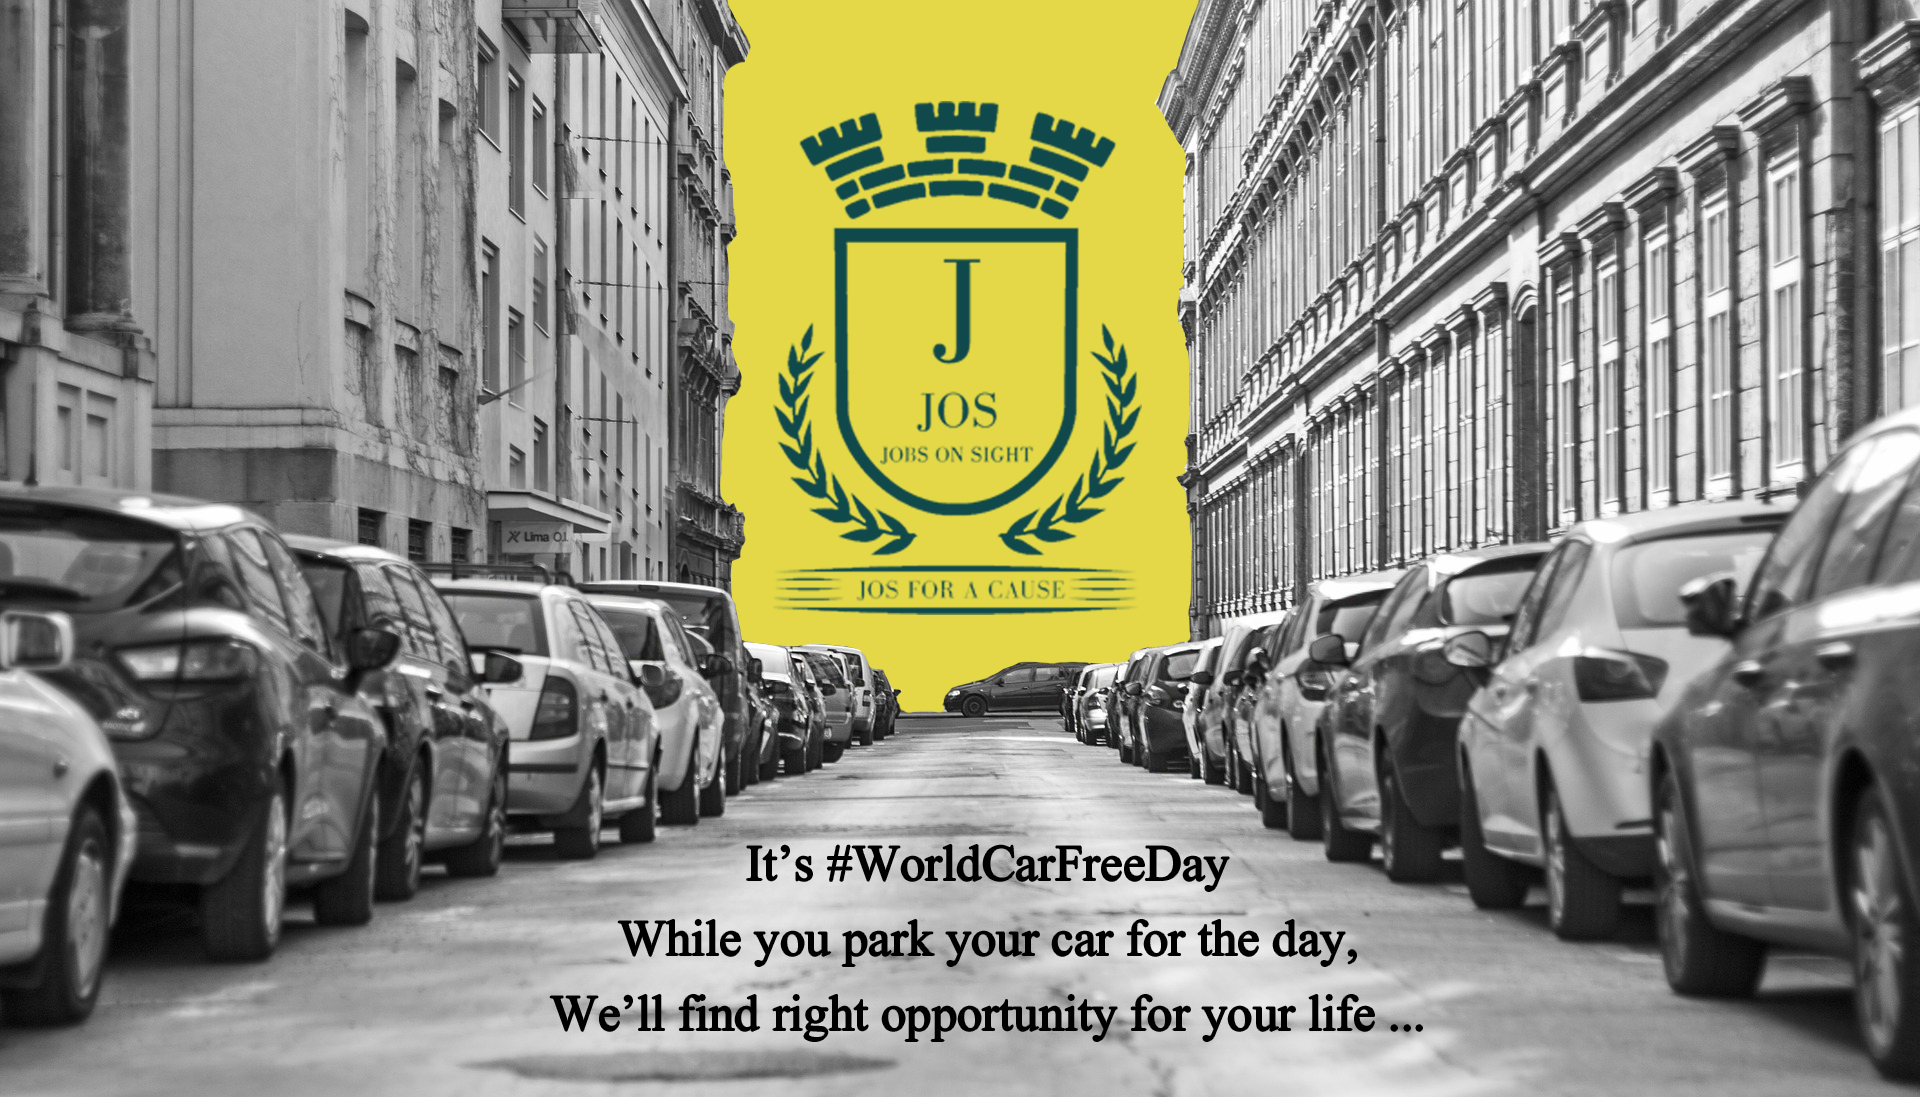 Worldcarfreeday